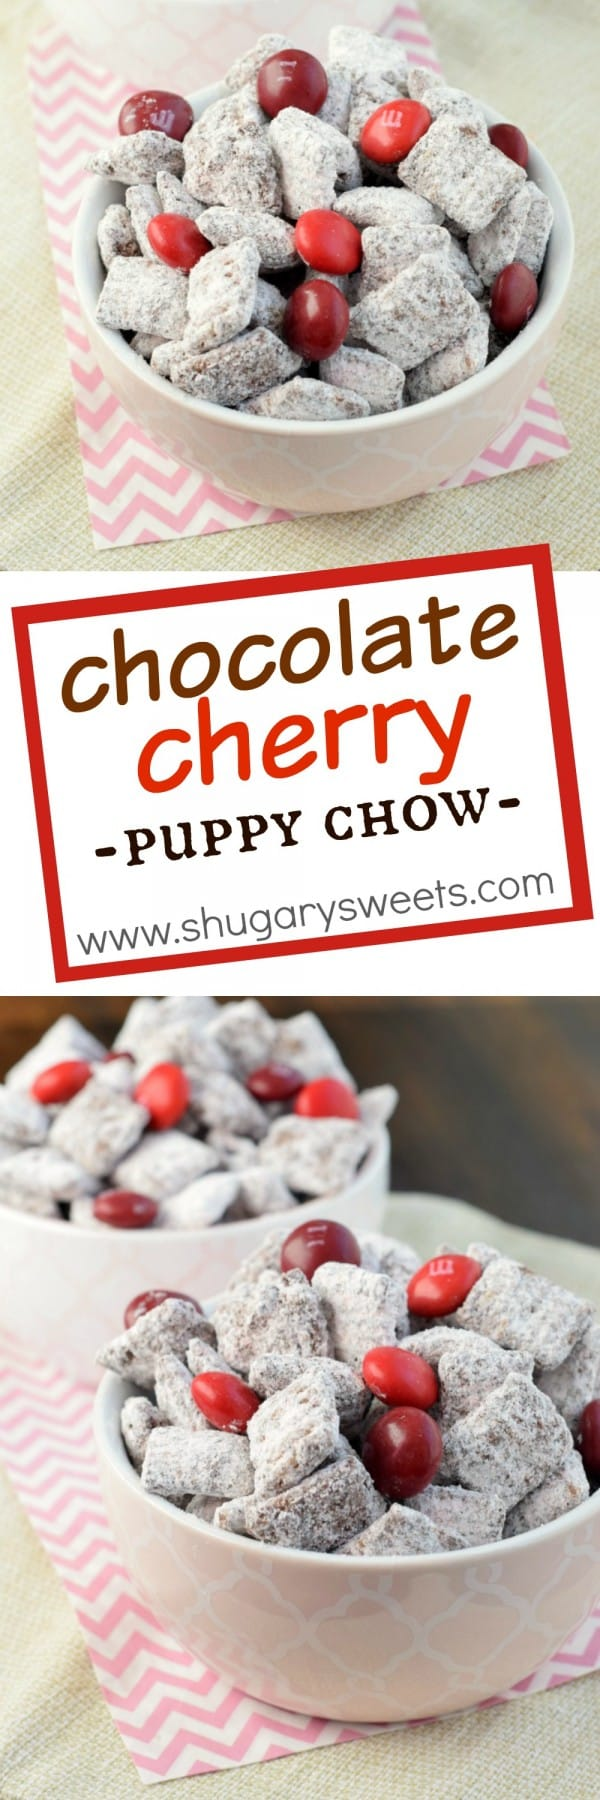 Chocolate Cherry Muddy Buddies (or Puppy Chow) recipe is a fun, sweet snack idea for Valentine's Day! Add some cherry flavored M&M'S too!